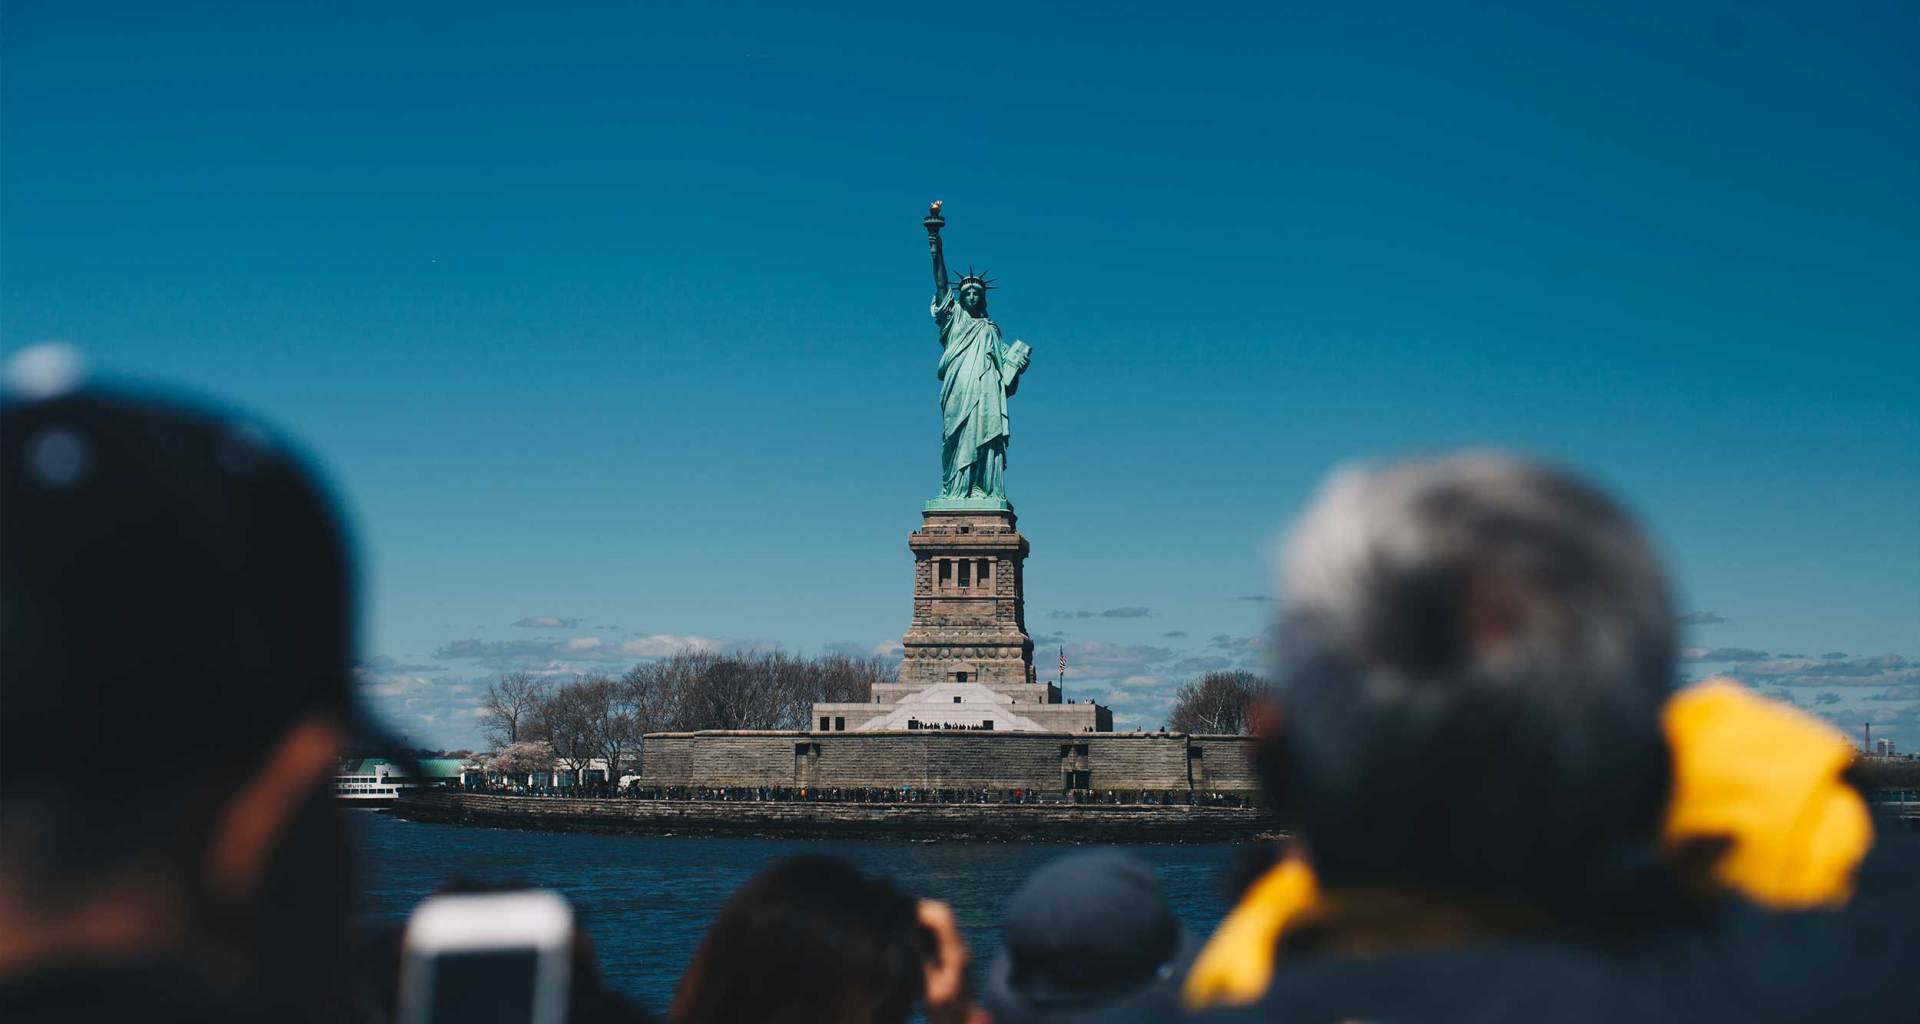 Crowd of people looking at and taking photos of the Statue of Liberty, seen on an island in the distance.